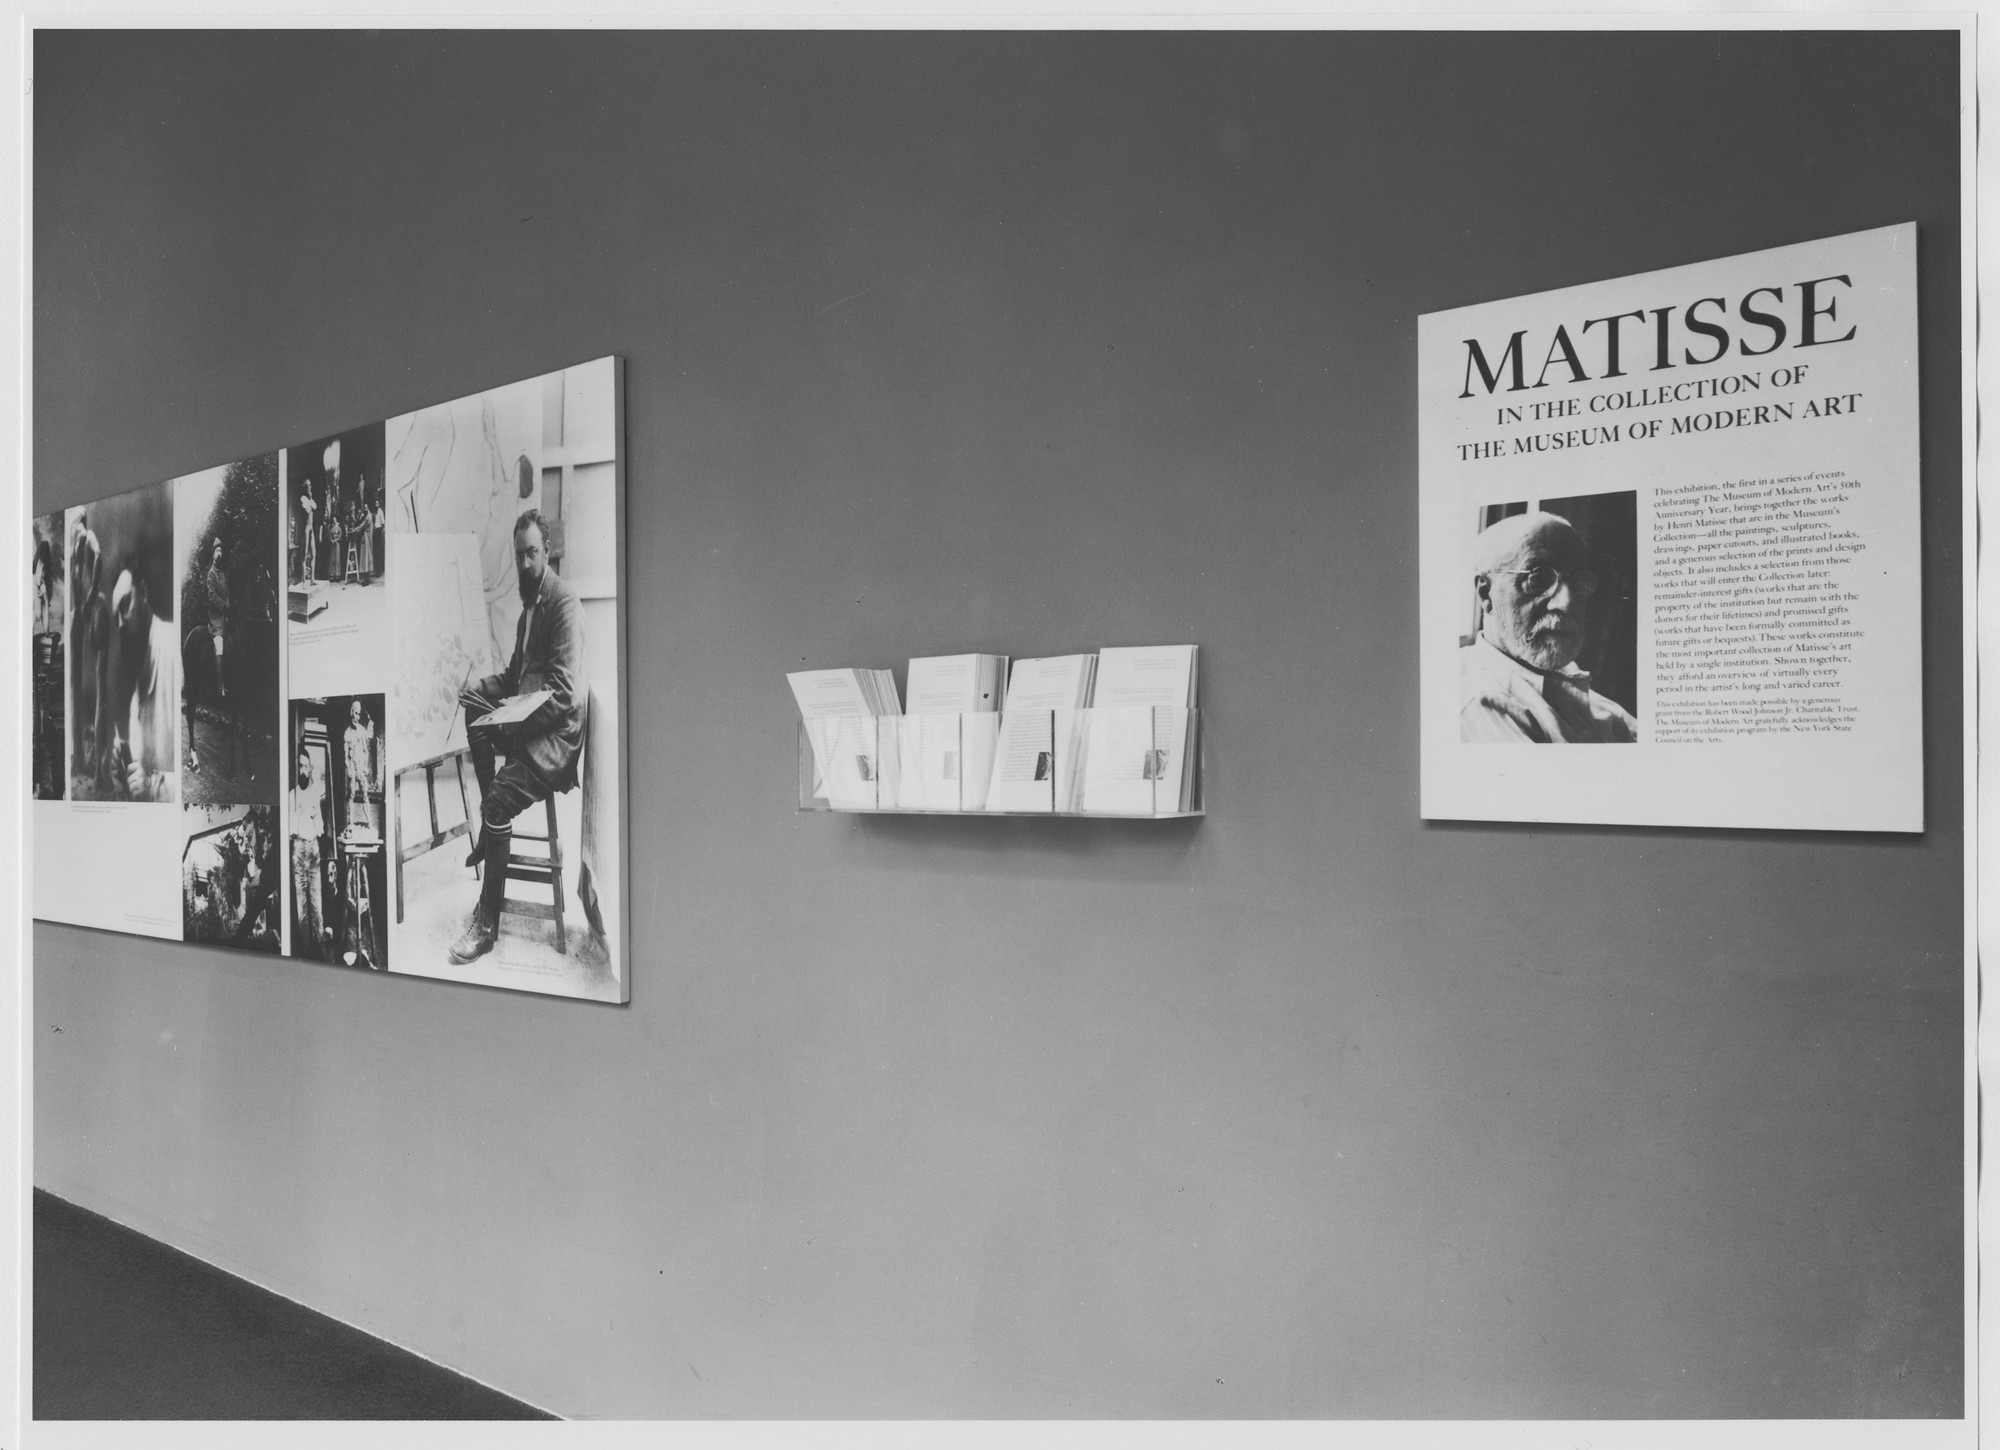 "Installation view of the exhibition, ""Matisse in the Collection of the Museum of Modern Art"" October 25, 1978–January 30, 1979. Photographic Archive. The Museum of Modern Art Archives, New York. IN1235.1. Photograph by Katherine Keller."